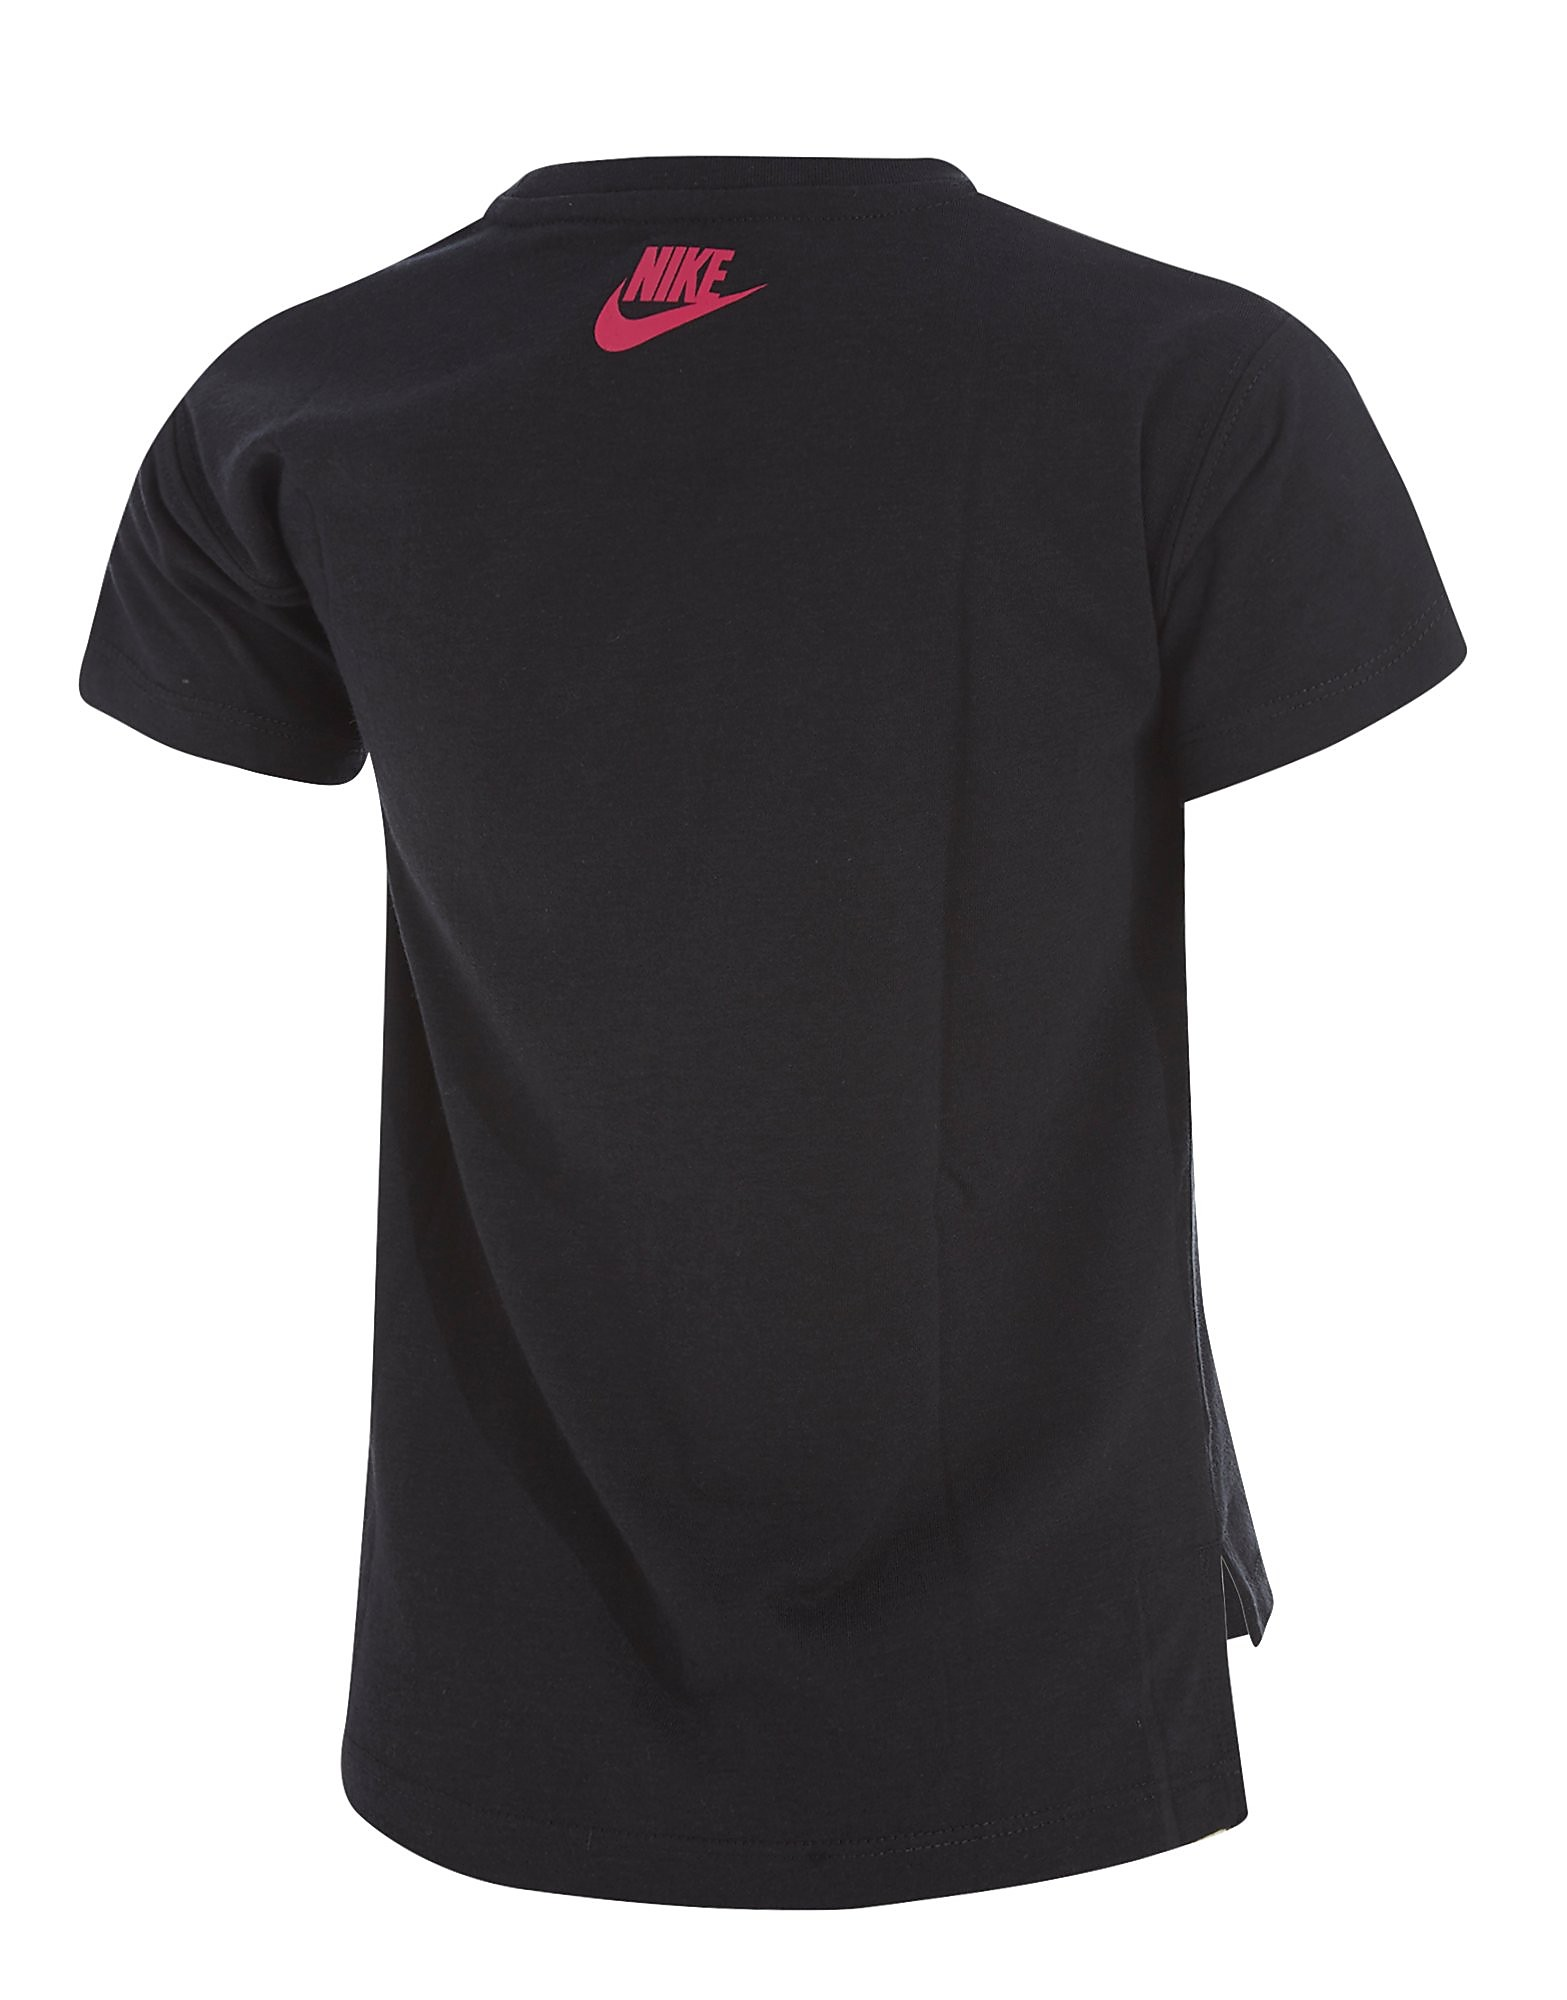 Nike Girls' Just Do It T-Shirt Children